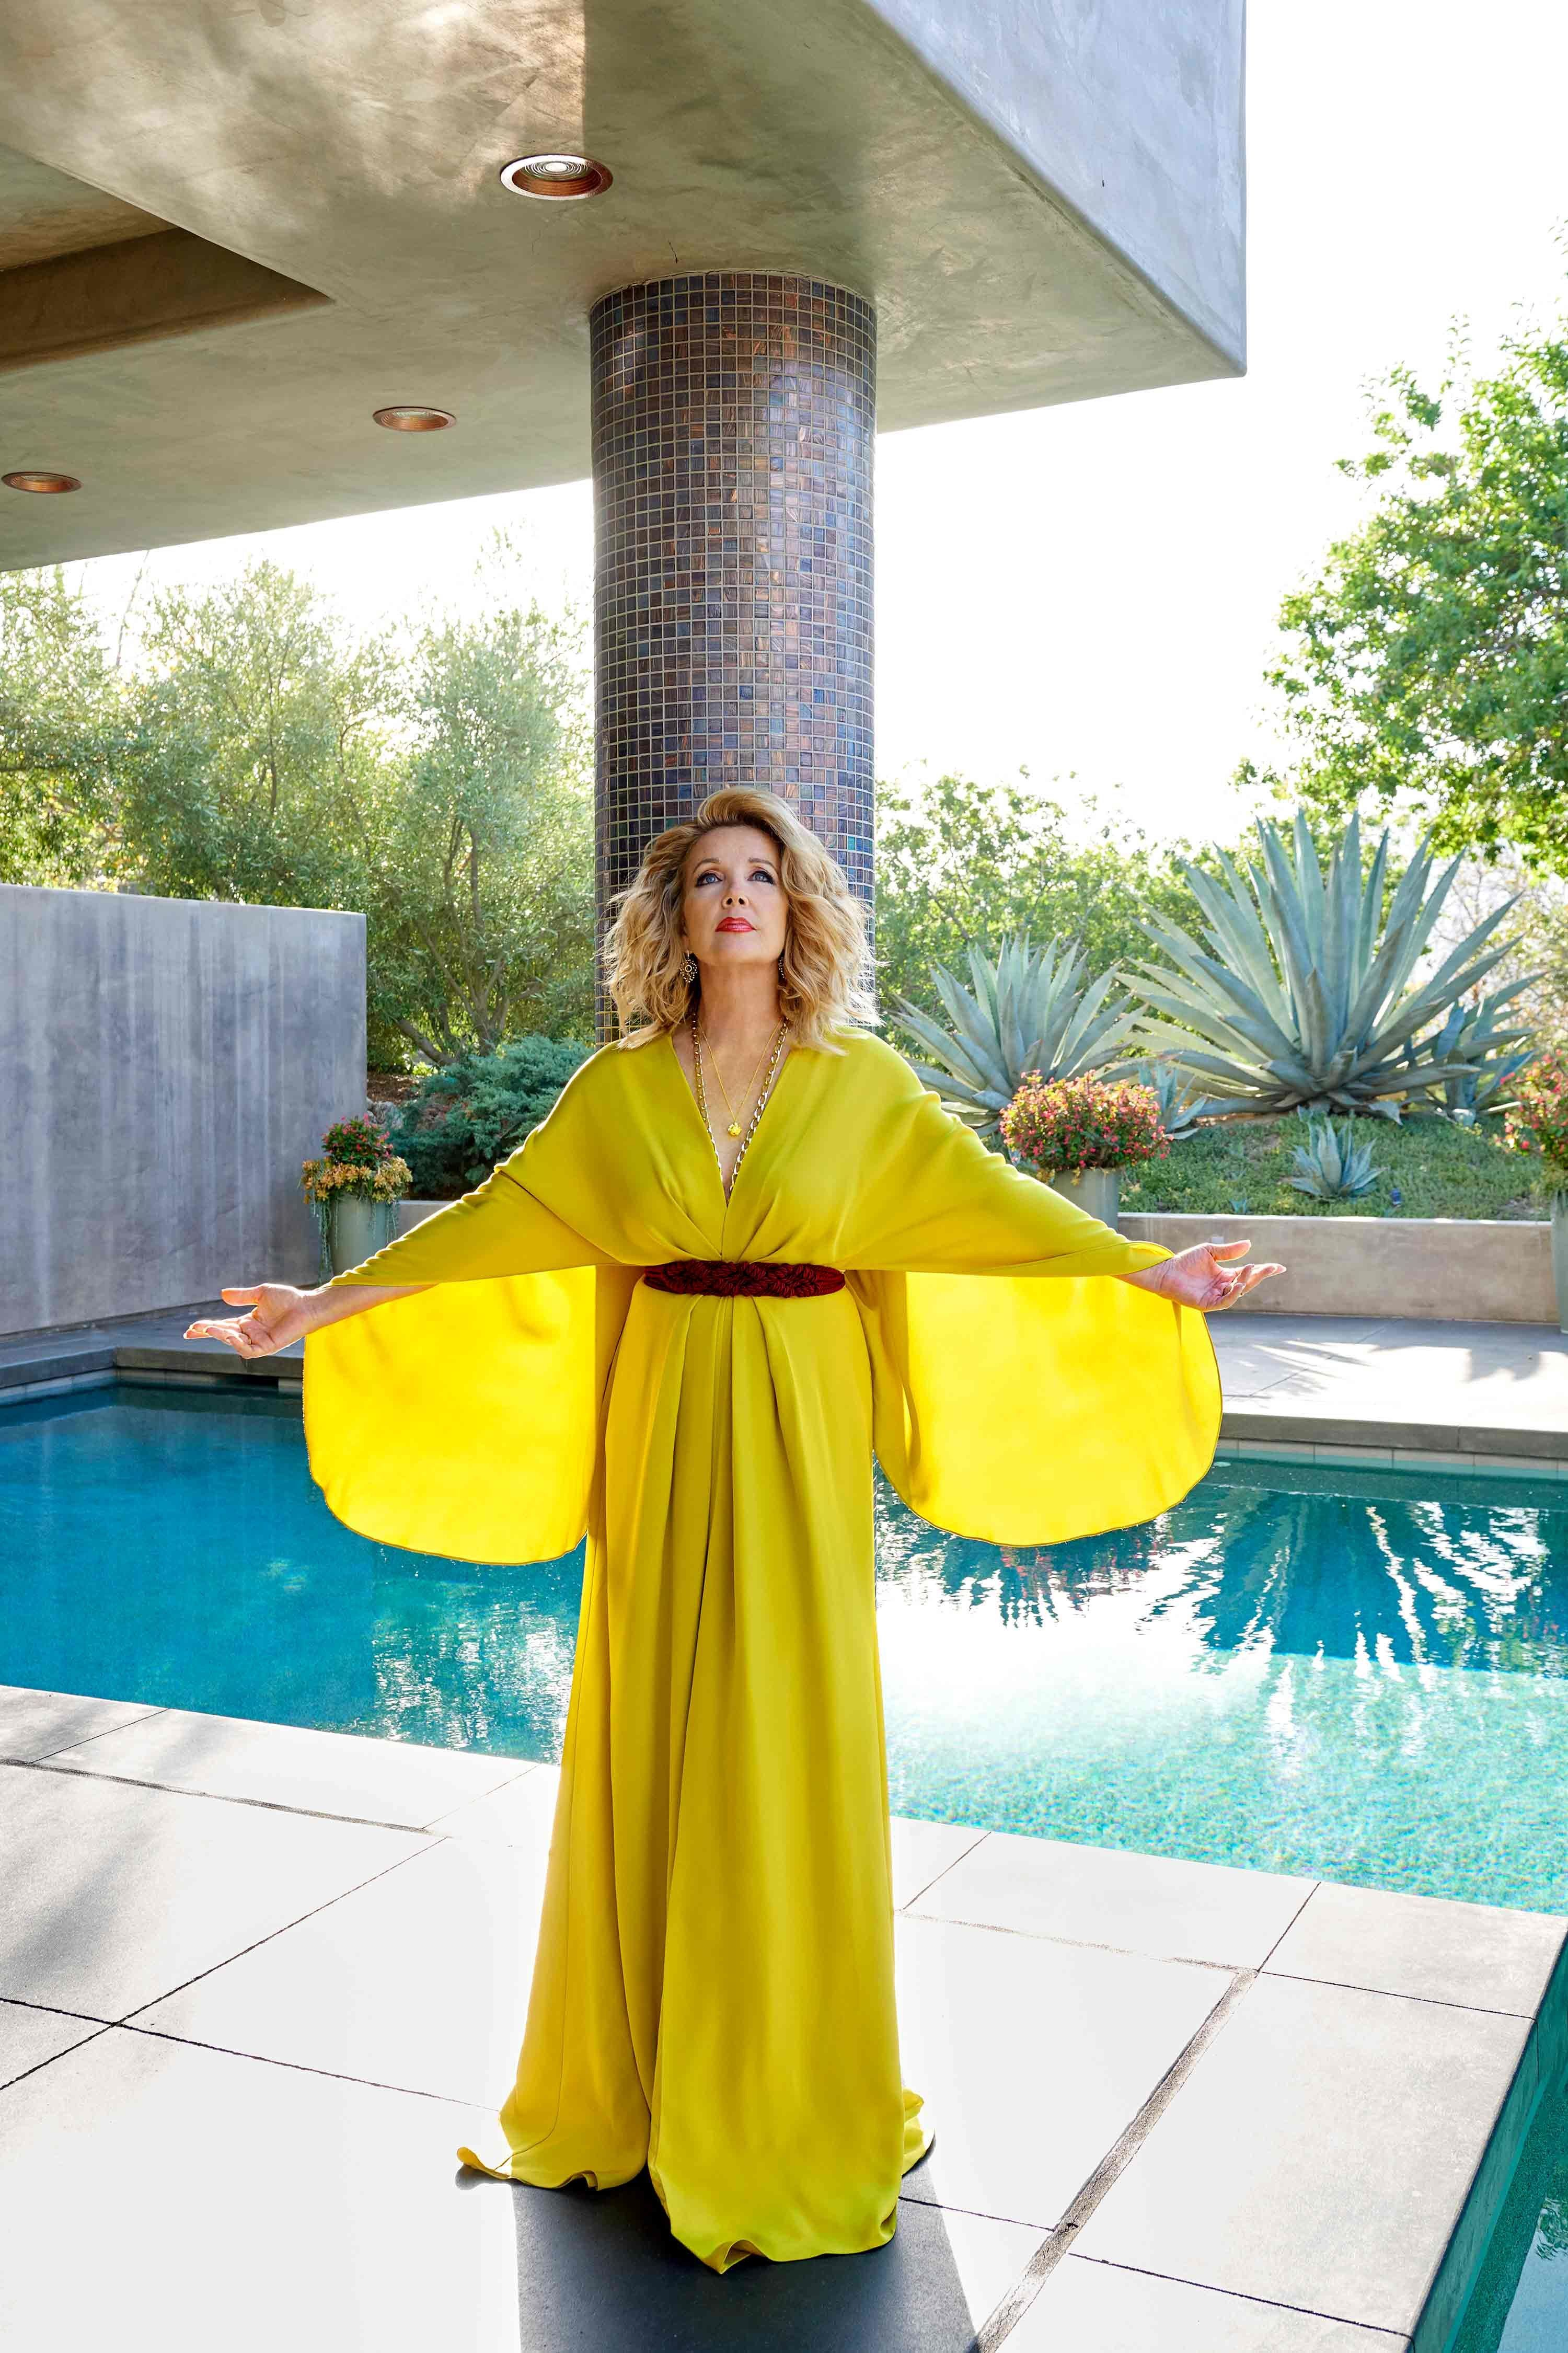 Melody Thomas Scott of The Young and the Restless in a cape style gold McQueen gown